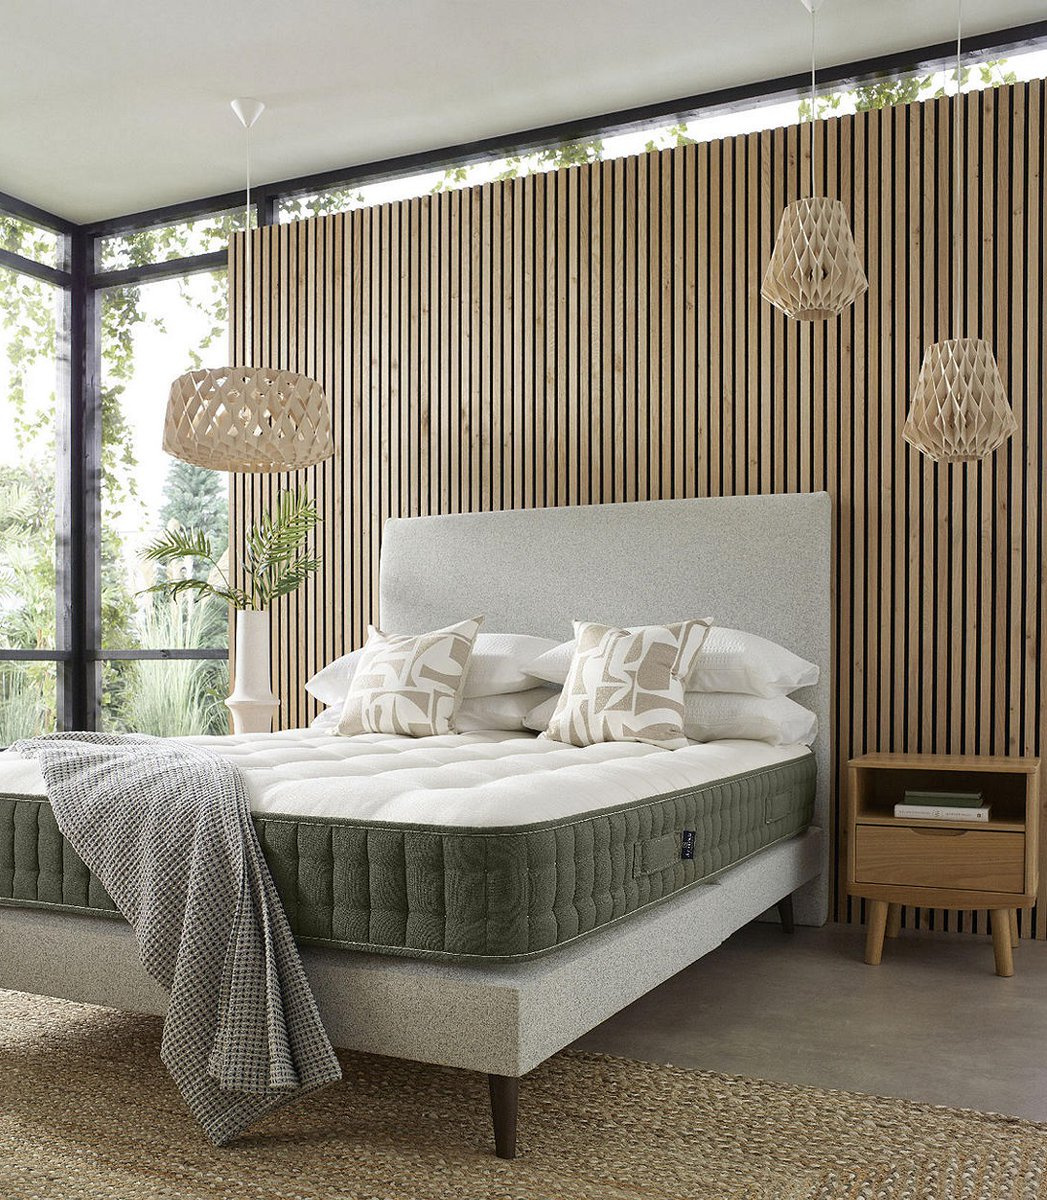 The secret to a peaceful night's rest? Introducing our new vegan friendly and fully recyclable EcoMattress™ 🛏️ 😴  Designed with sustainability at the forefront alongside the ultimate comfort and support. #JLHome https://t.co/7IOWyxFuX9 https://t.co/xe6lkCeJoE